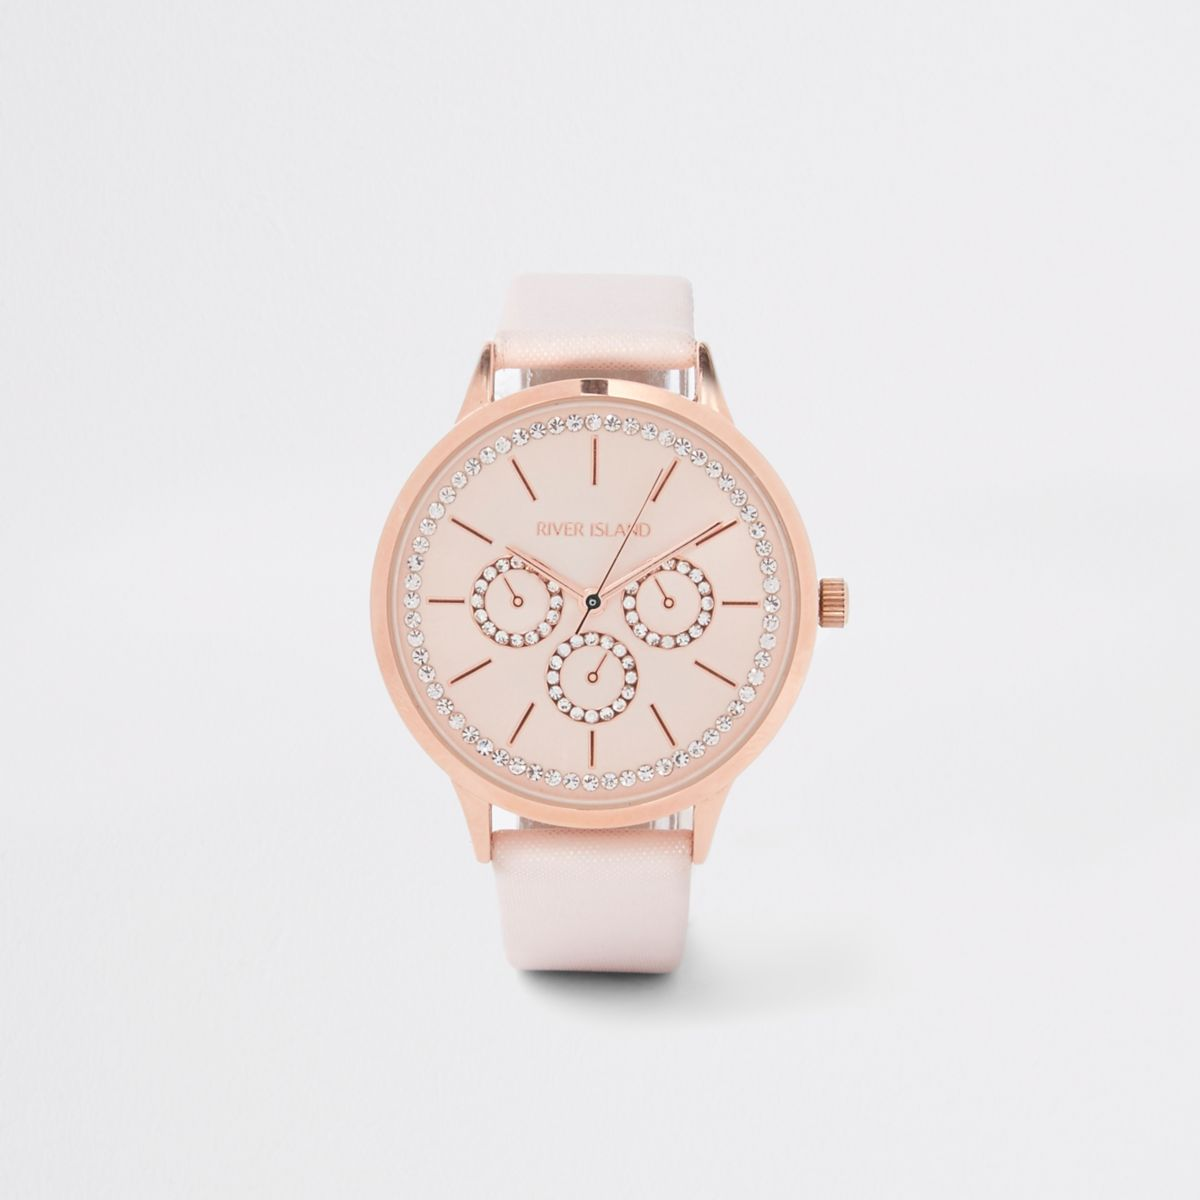 Pink rose gold tone iridescent watch